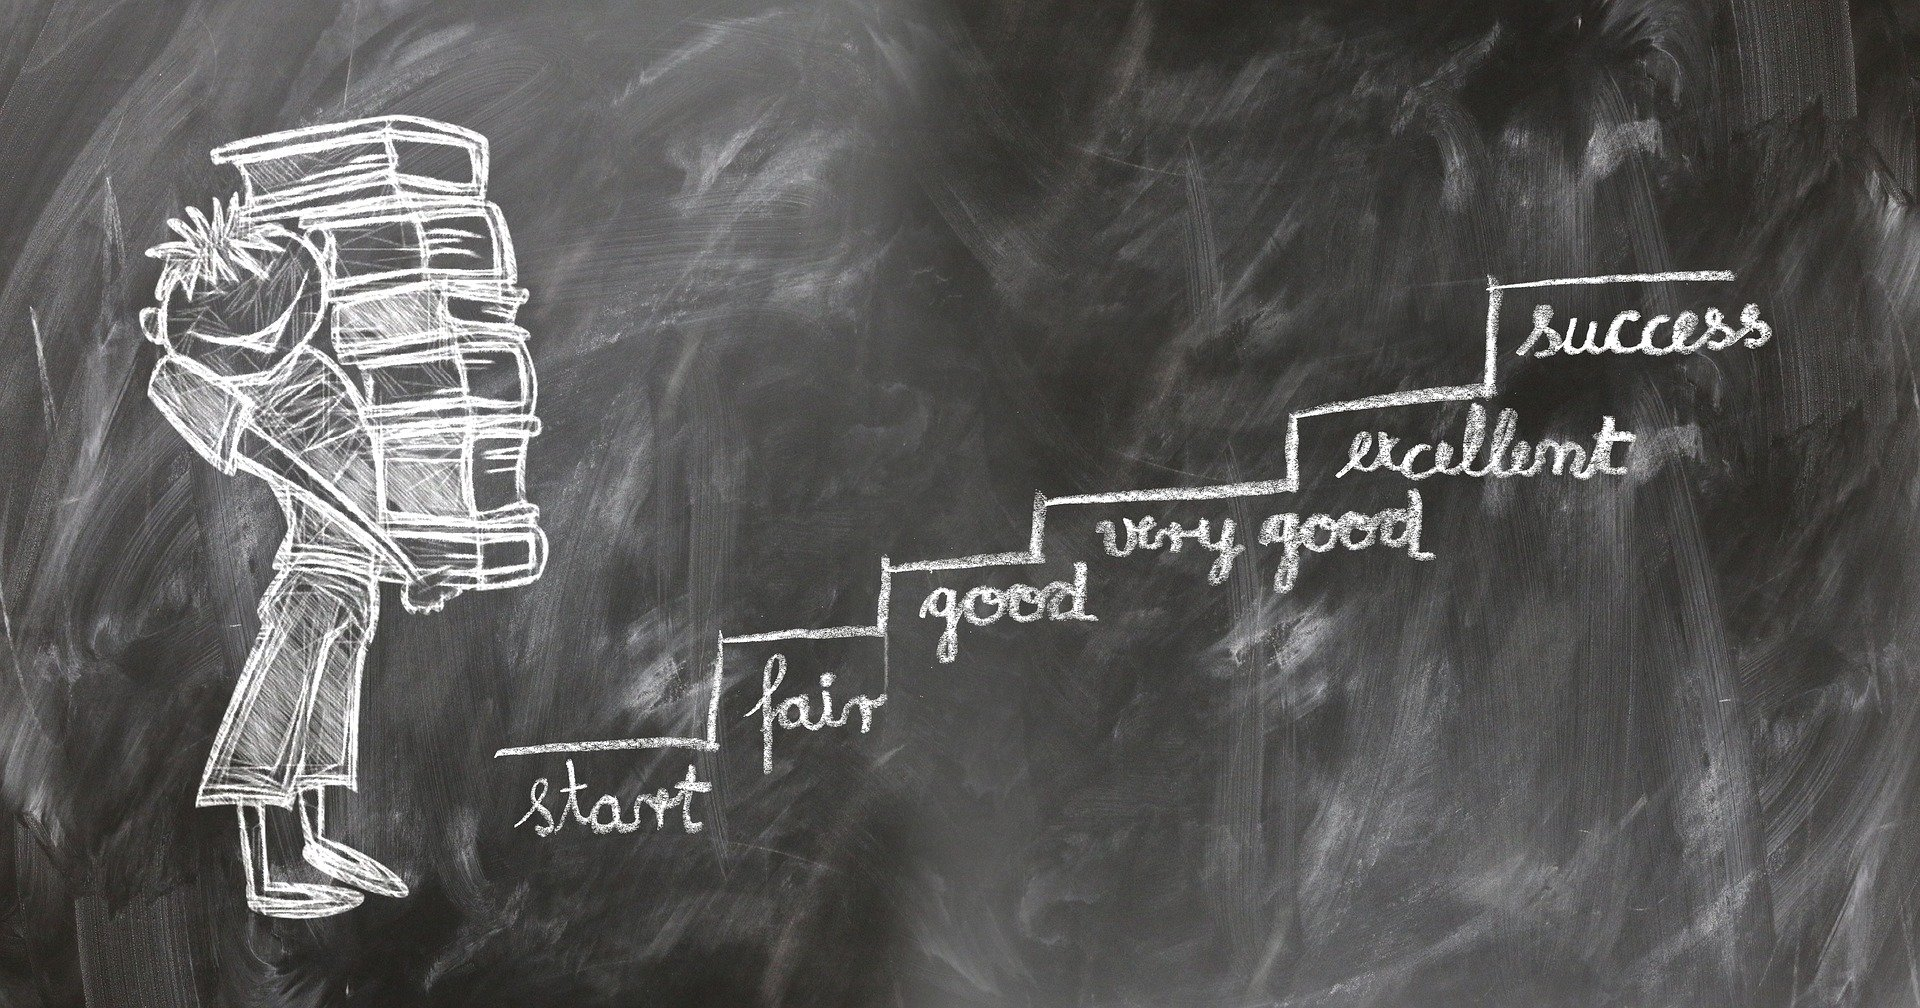 Image of a chalkboard with a drawing of a student carrying books up stairs on which words are written like start, fair, good